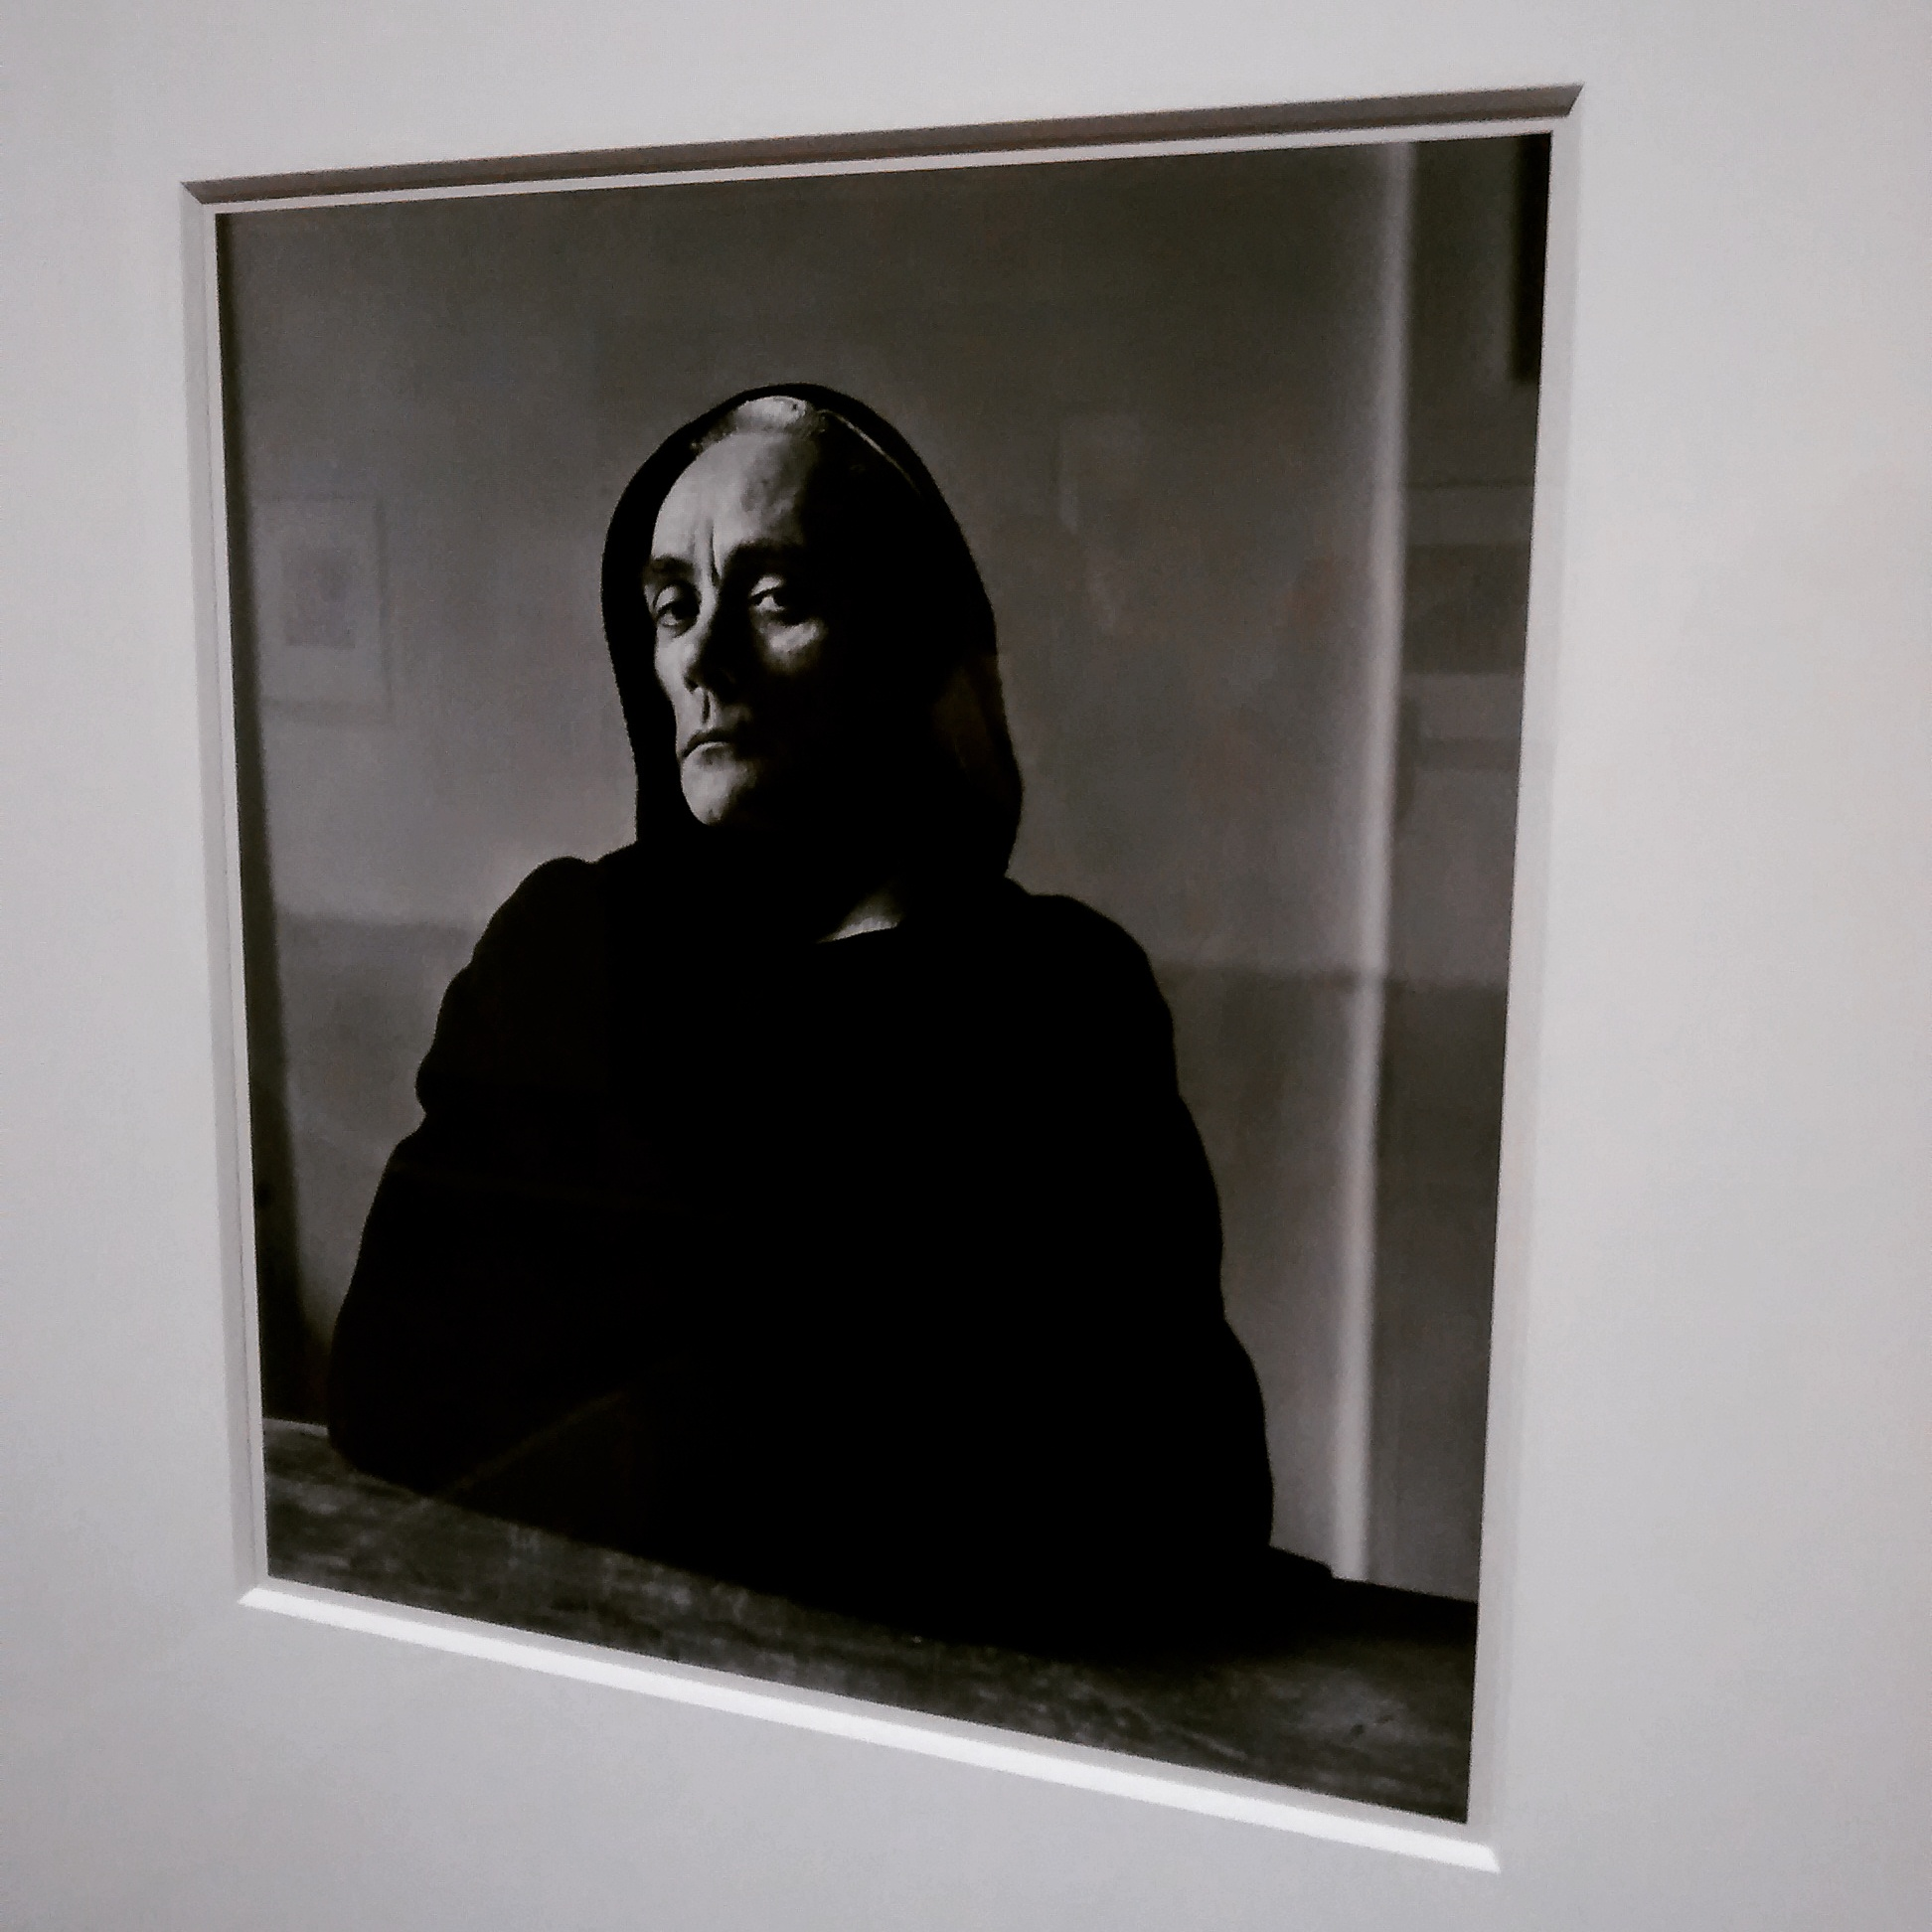 Irving Penn: Centennial at The Metropolitan Museum of Art